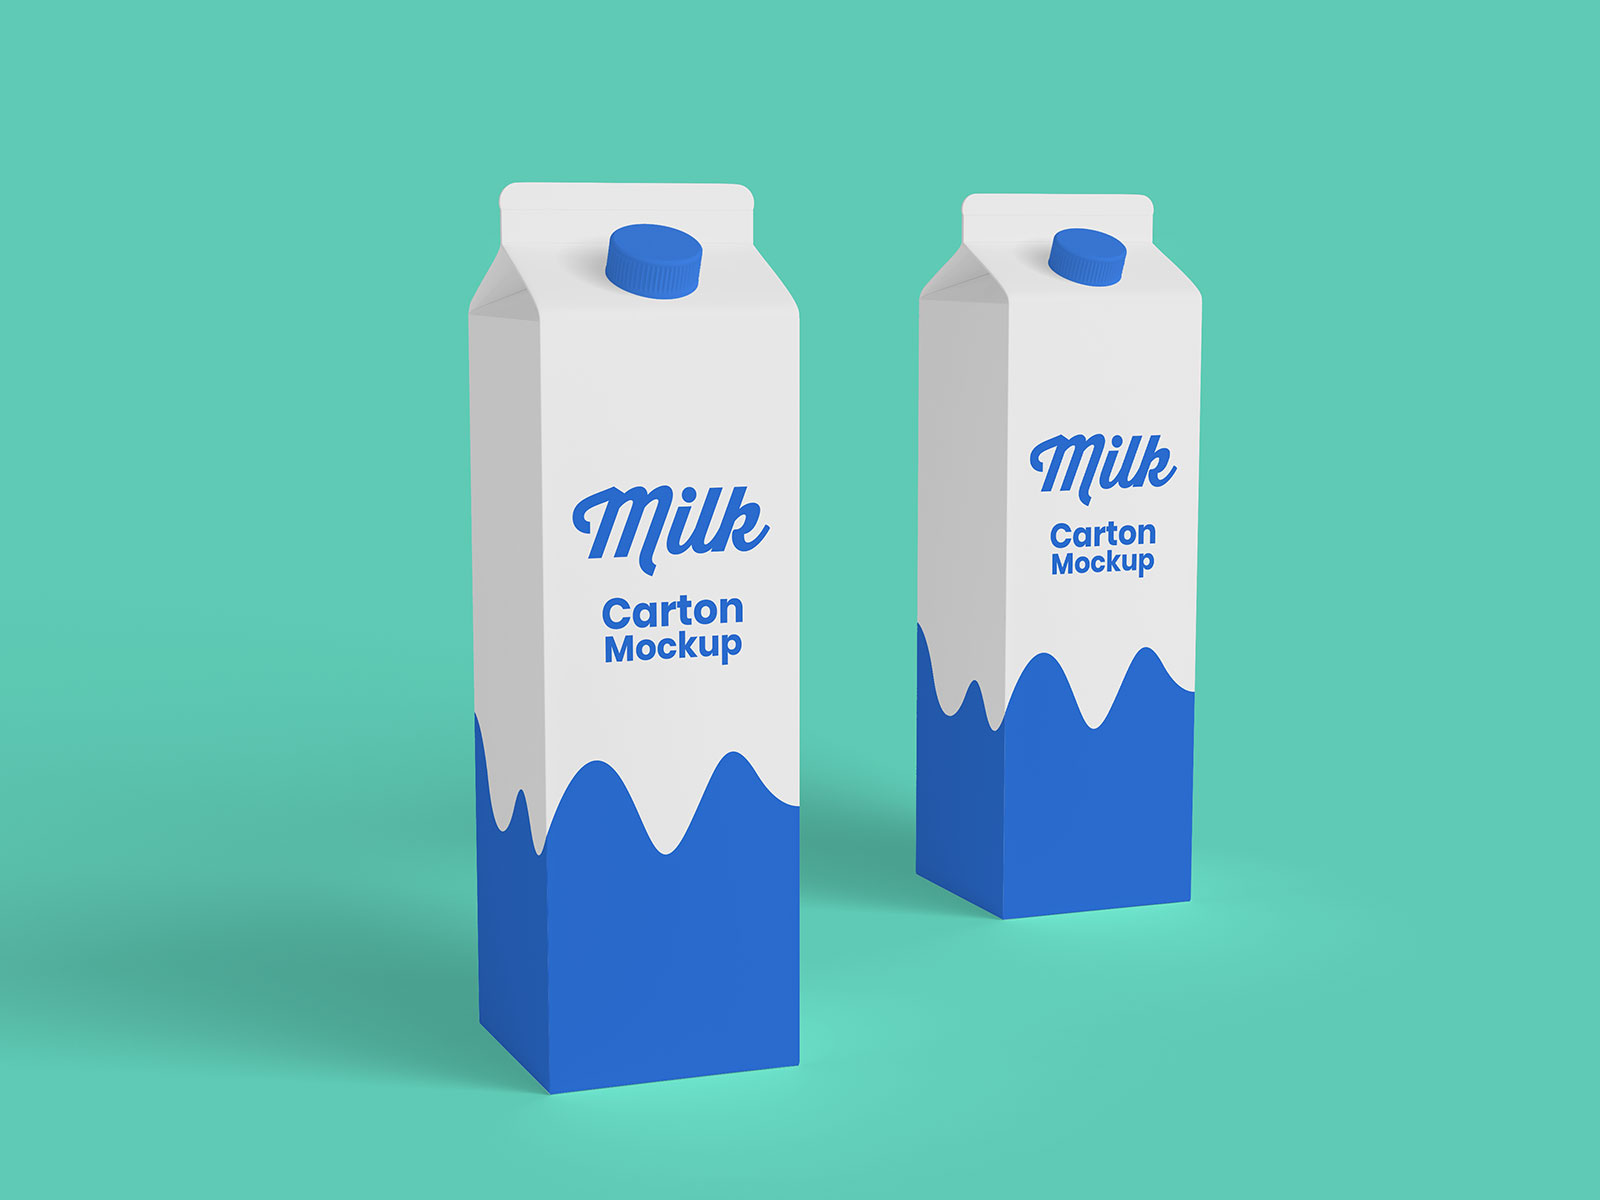 Free-Juice-Milk-Carton-Mockup-PSD-Set-2